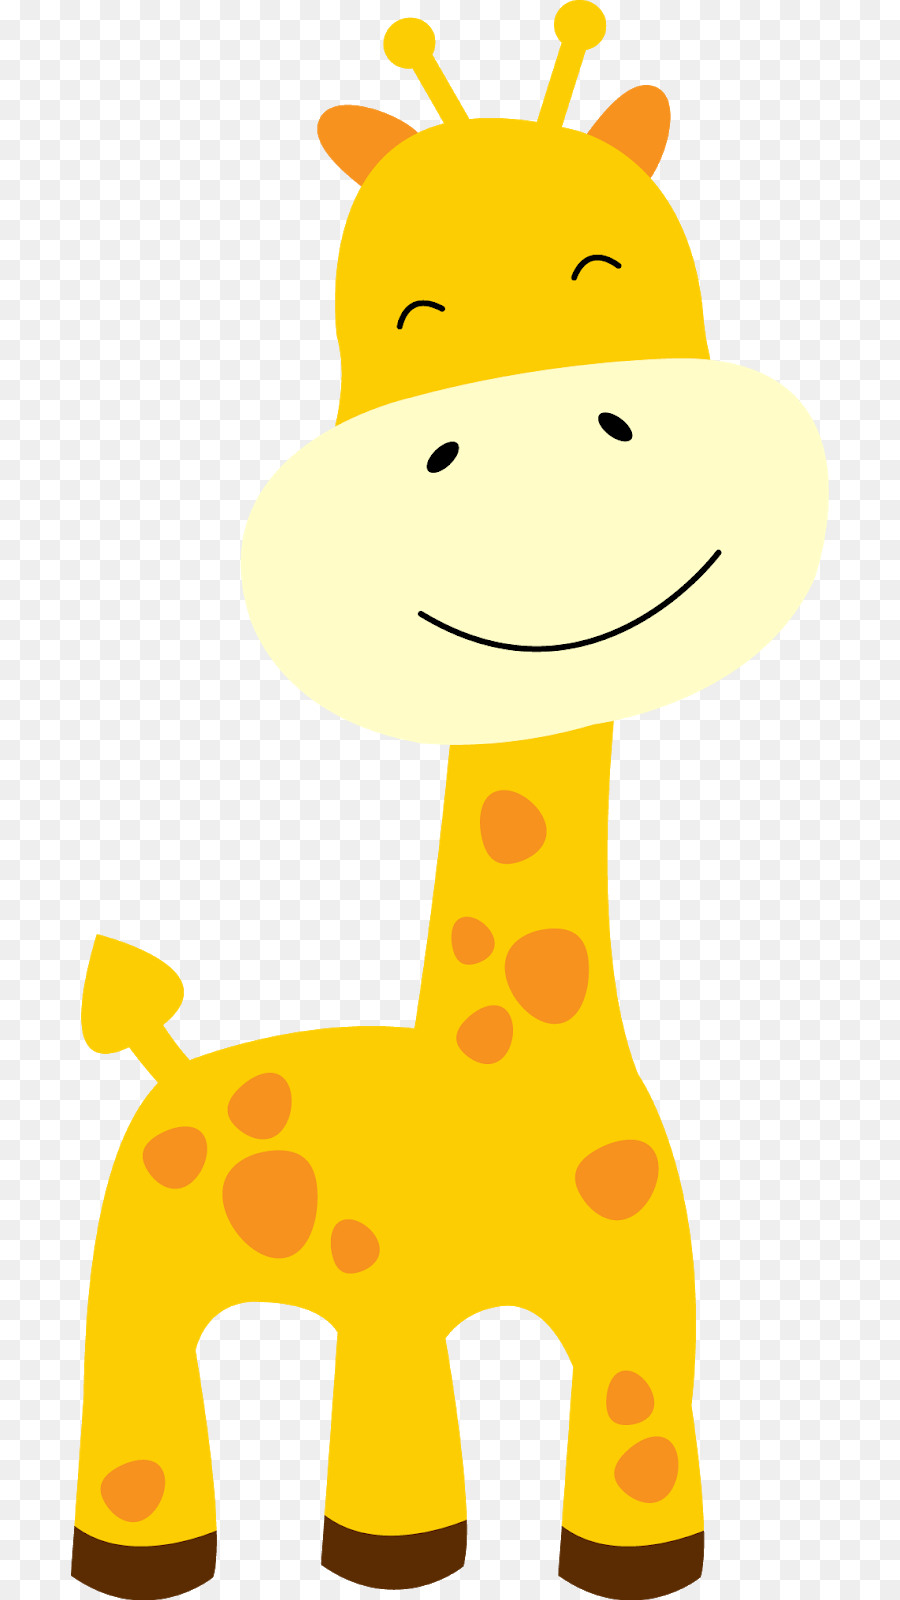 giraffe cartoon clipart at getdrawings com free for personal use rh getdrawings com pink baby giraffe clipart cute baby giraffe clipart